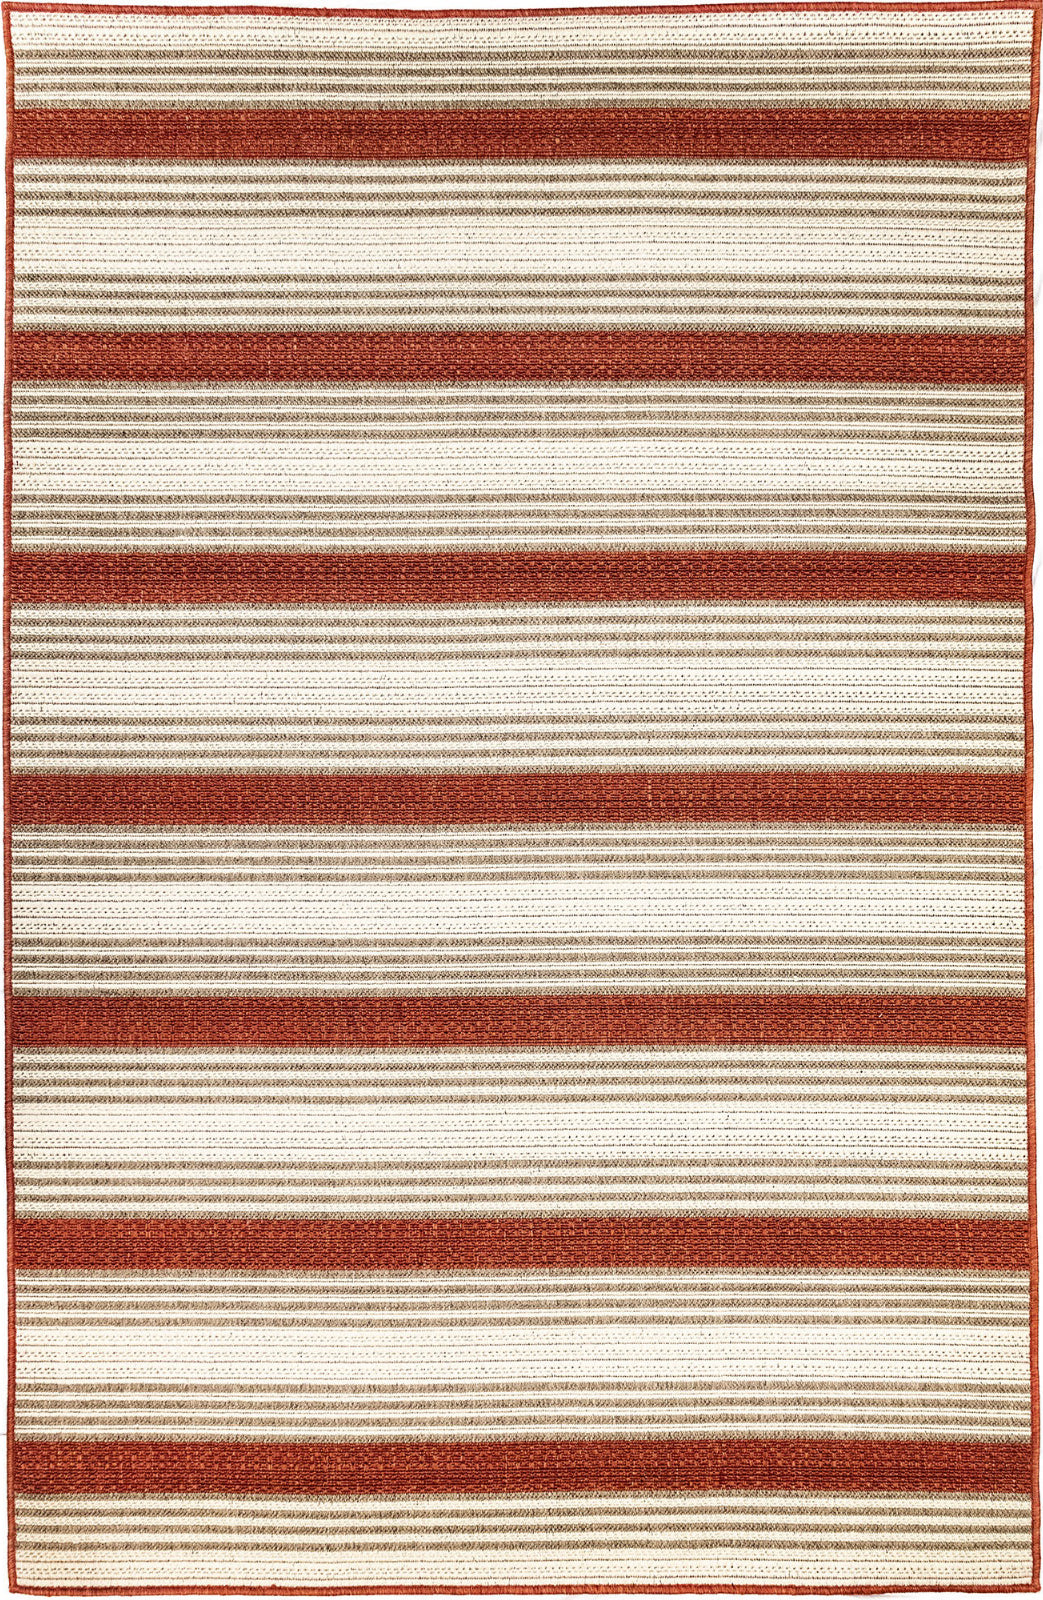 Trans Ocean Riviera Stripe Red Area Rug Mirror by Liora Manne main image